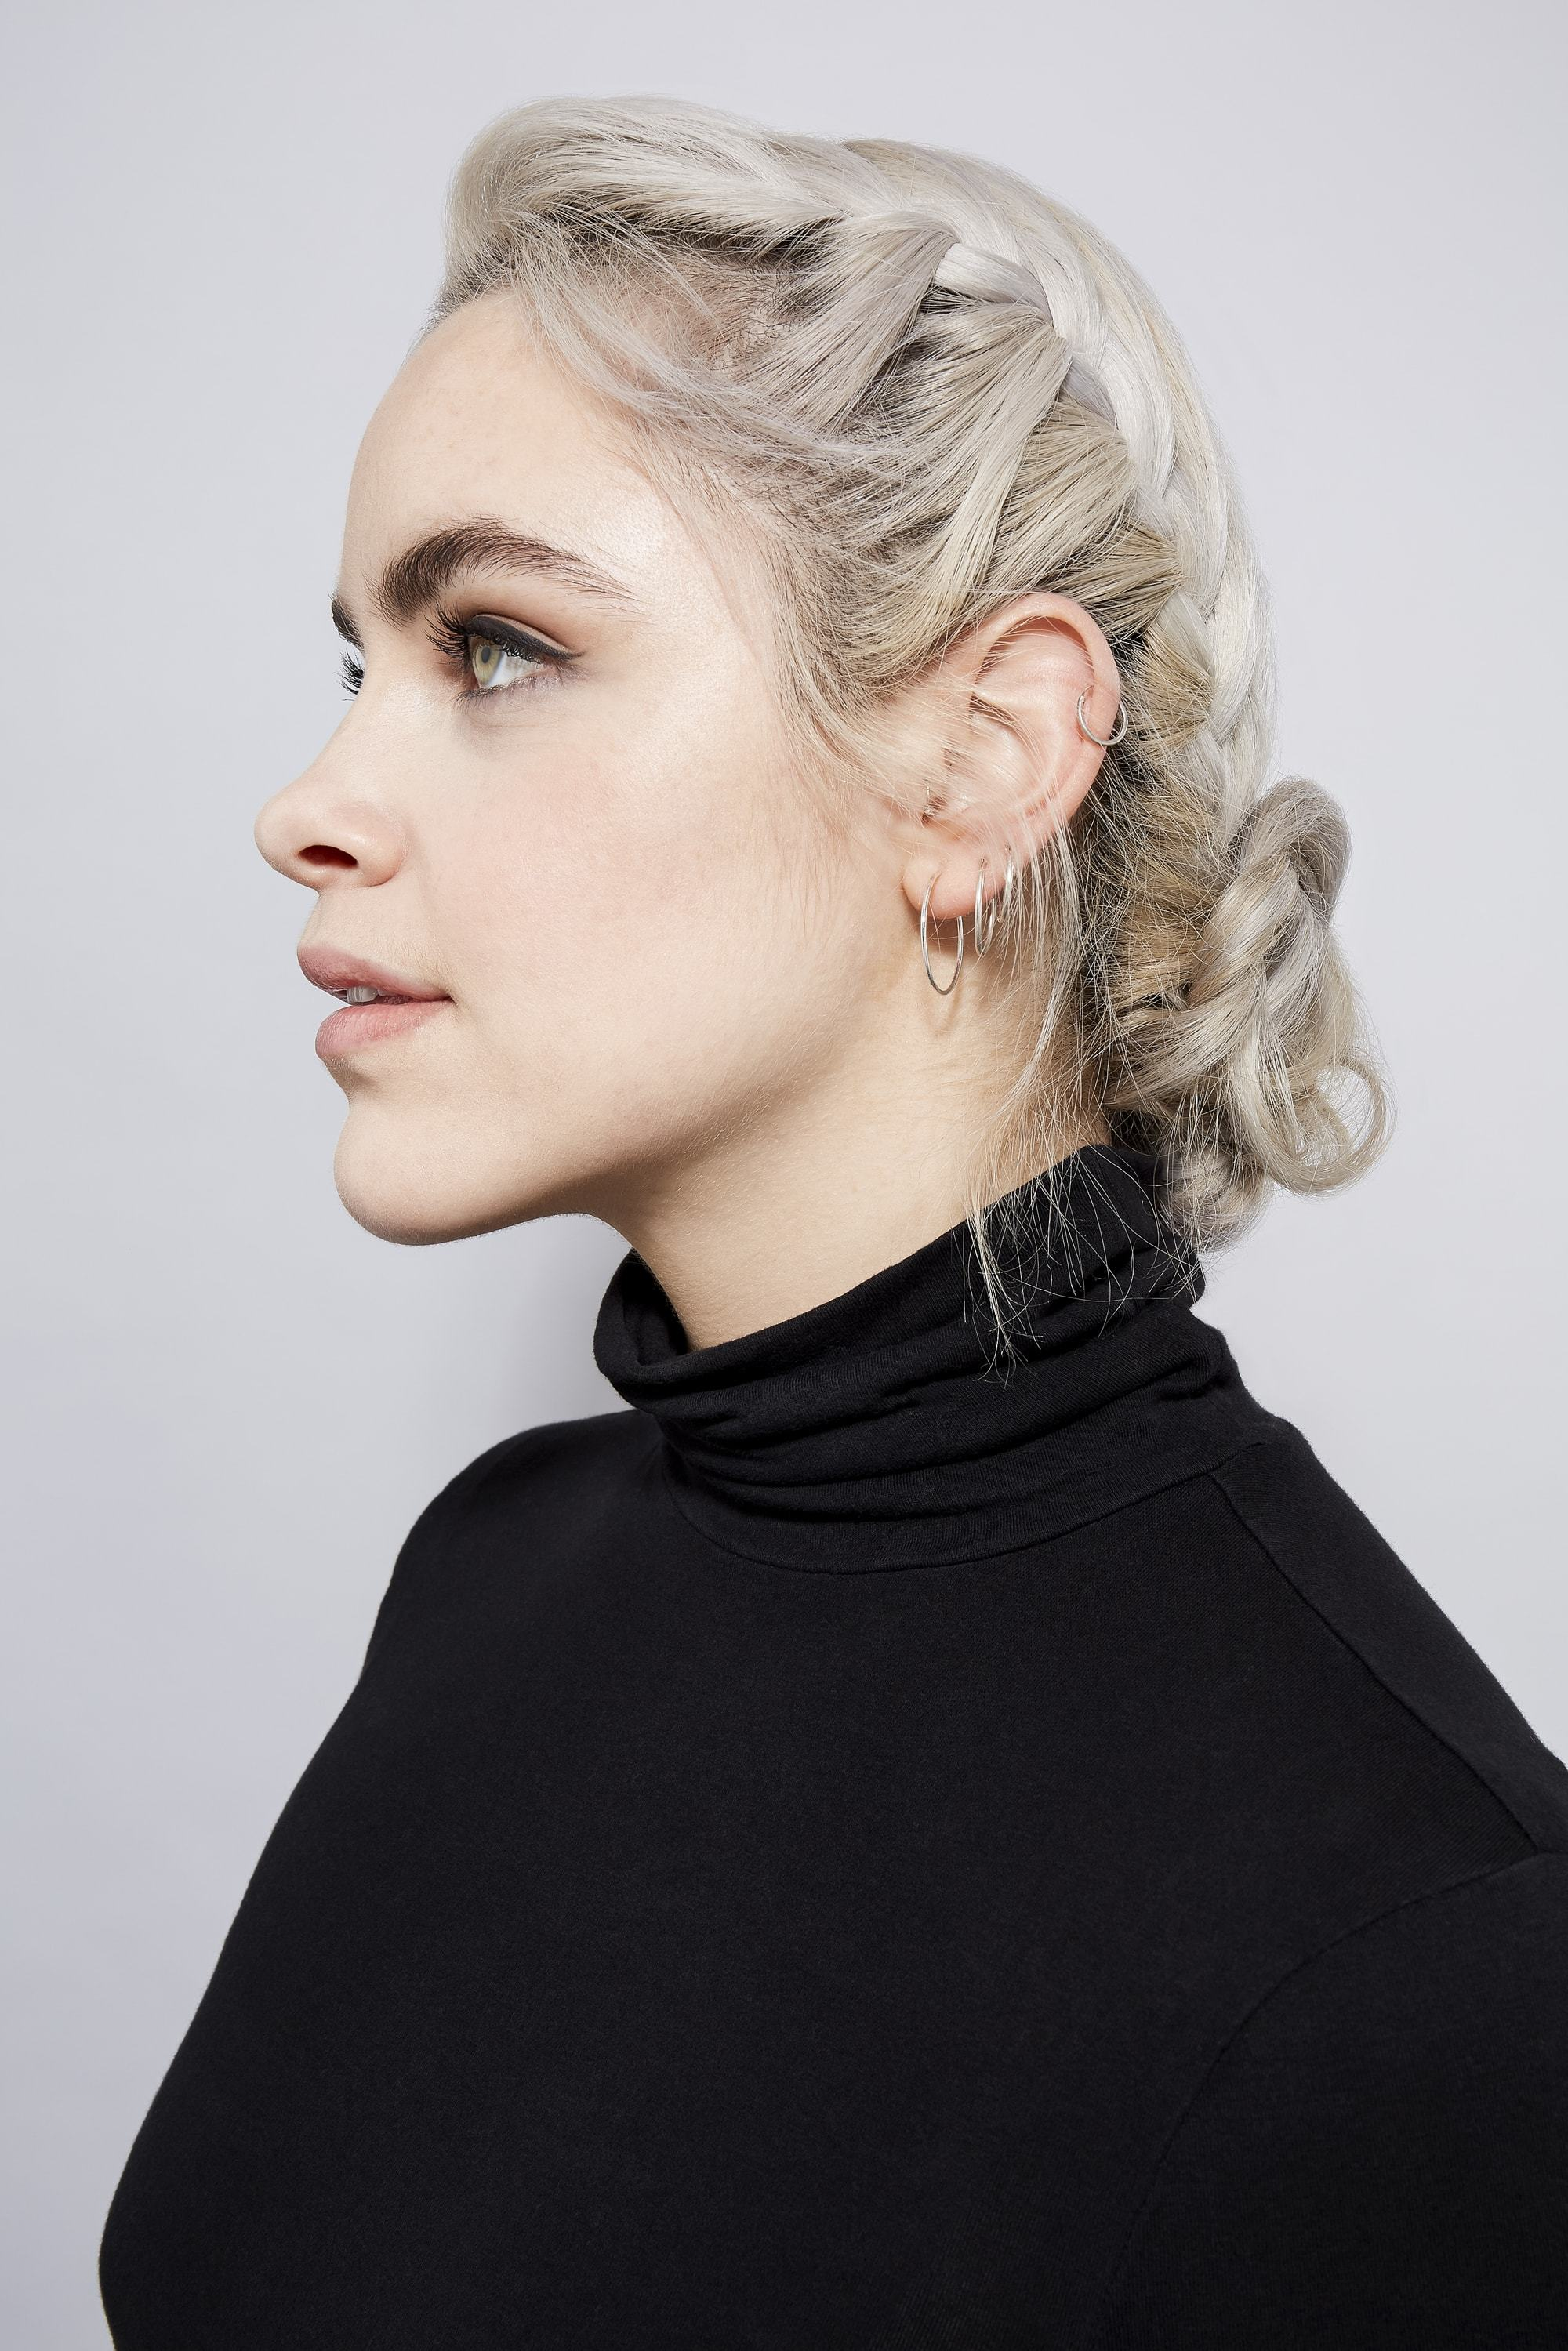 Easy braids for long hair: Side profile of a woman with ash blonde hair in a braided bun, wearing a black roll neck top